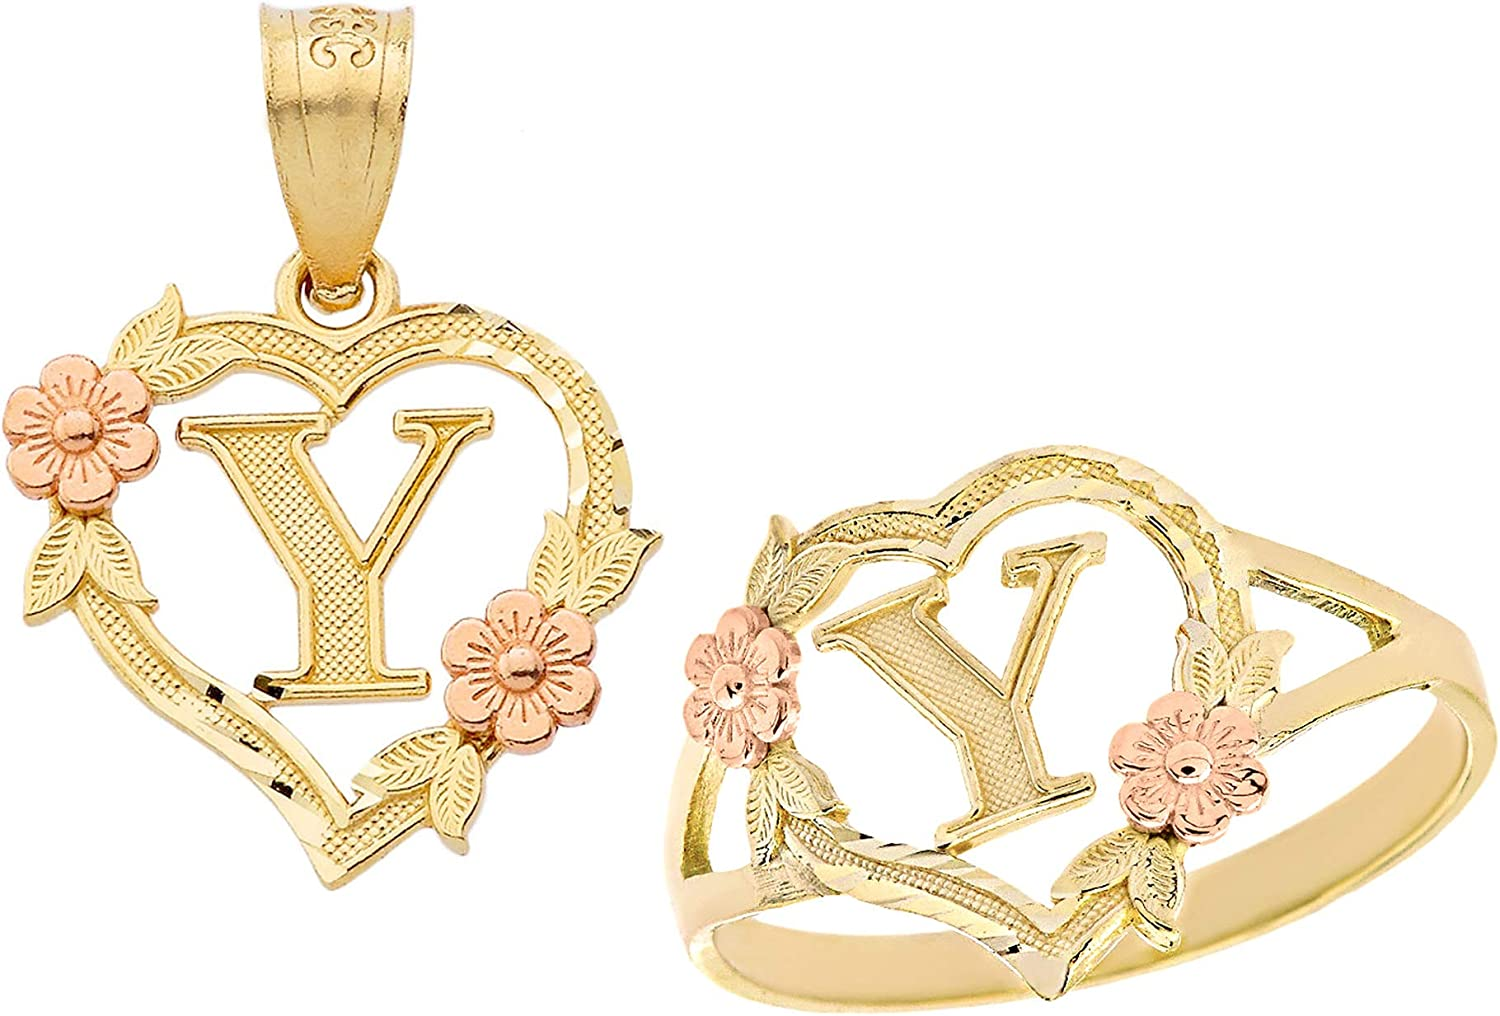 CaliRoseJewelry 10k Gold Initial Heart Pendant and Ring Set Letter Y